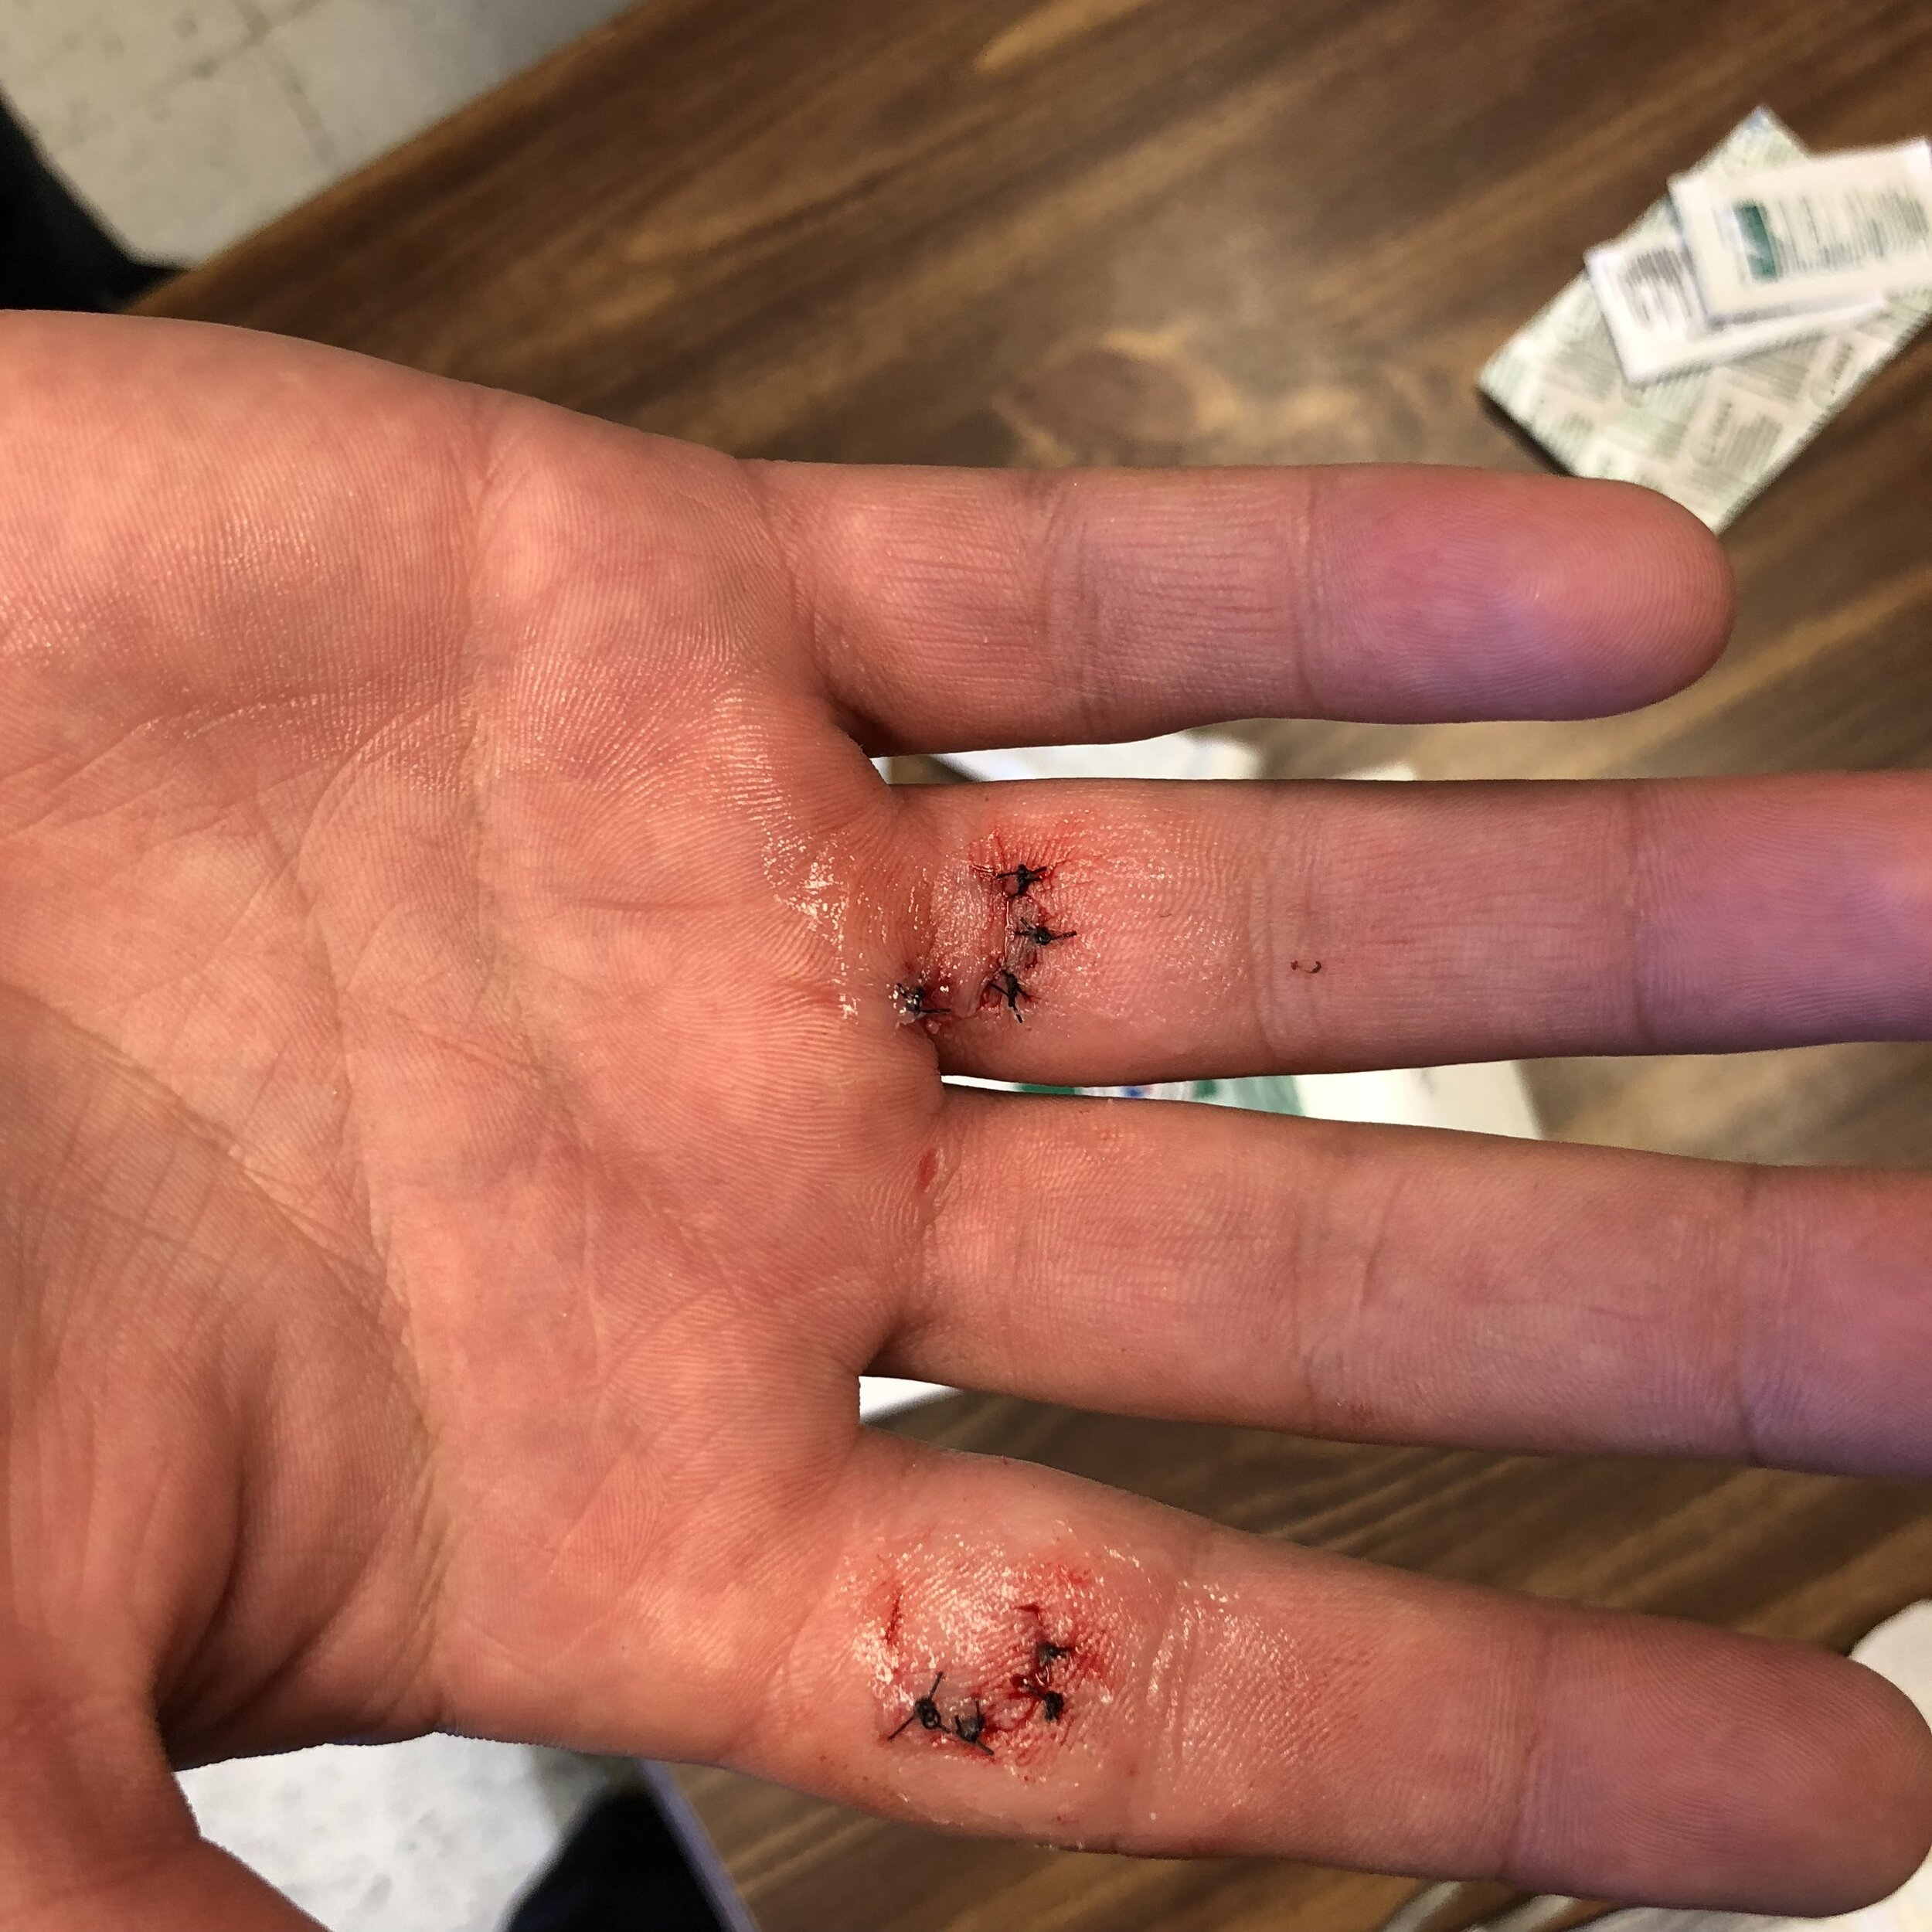 Our patient cut his hand aka had a laceration, and we were able to sew up the cut (suture the wound) about 20 minutes after the incident happened. This can ensure that healing is optimal and scar tissue is minimal.